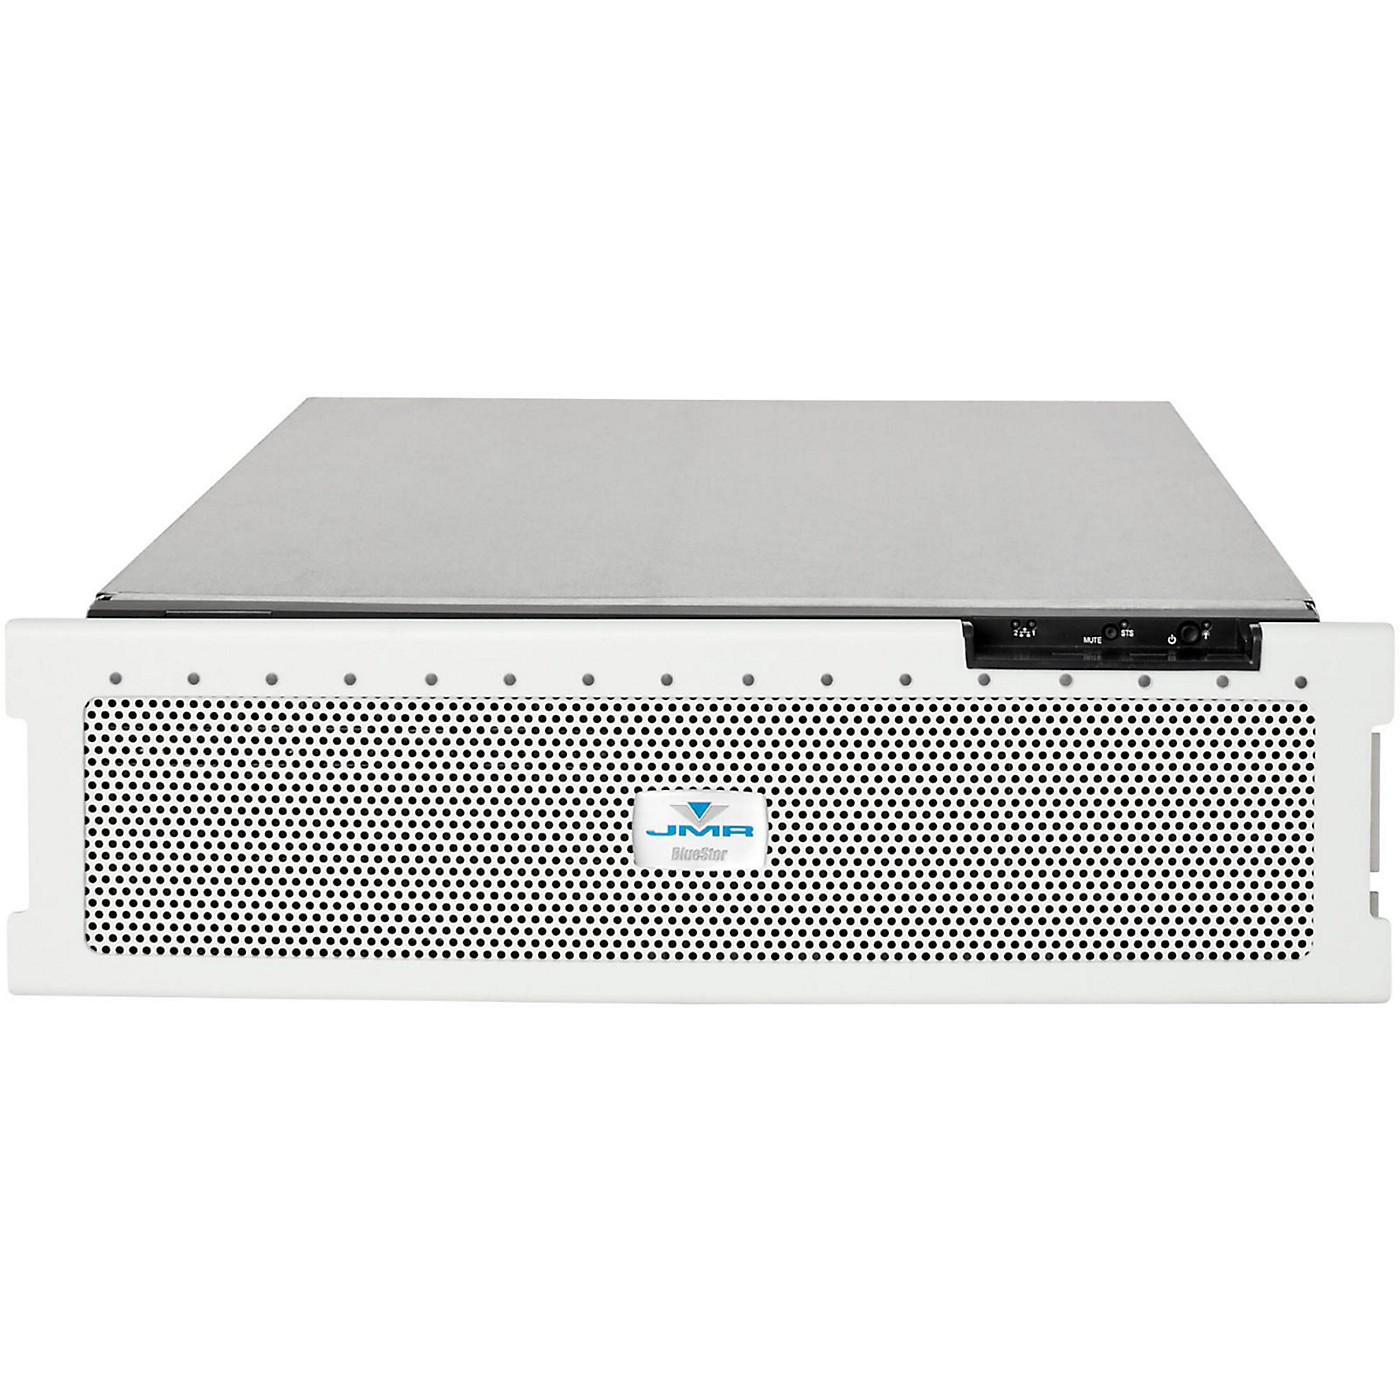 JMR Electronics 16 Bay 3U 10G Ethernet NAS Dual RAID Server thumbnail